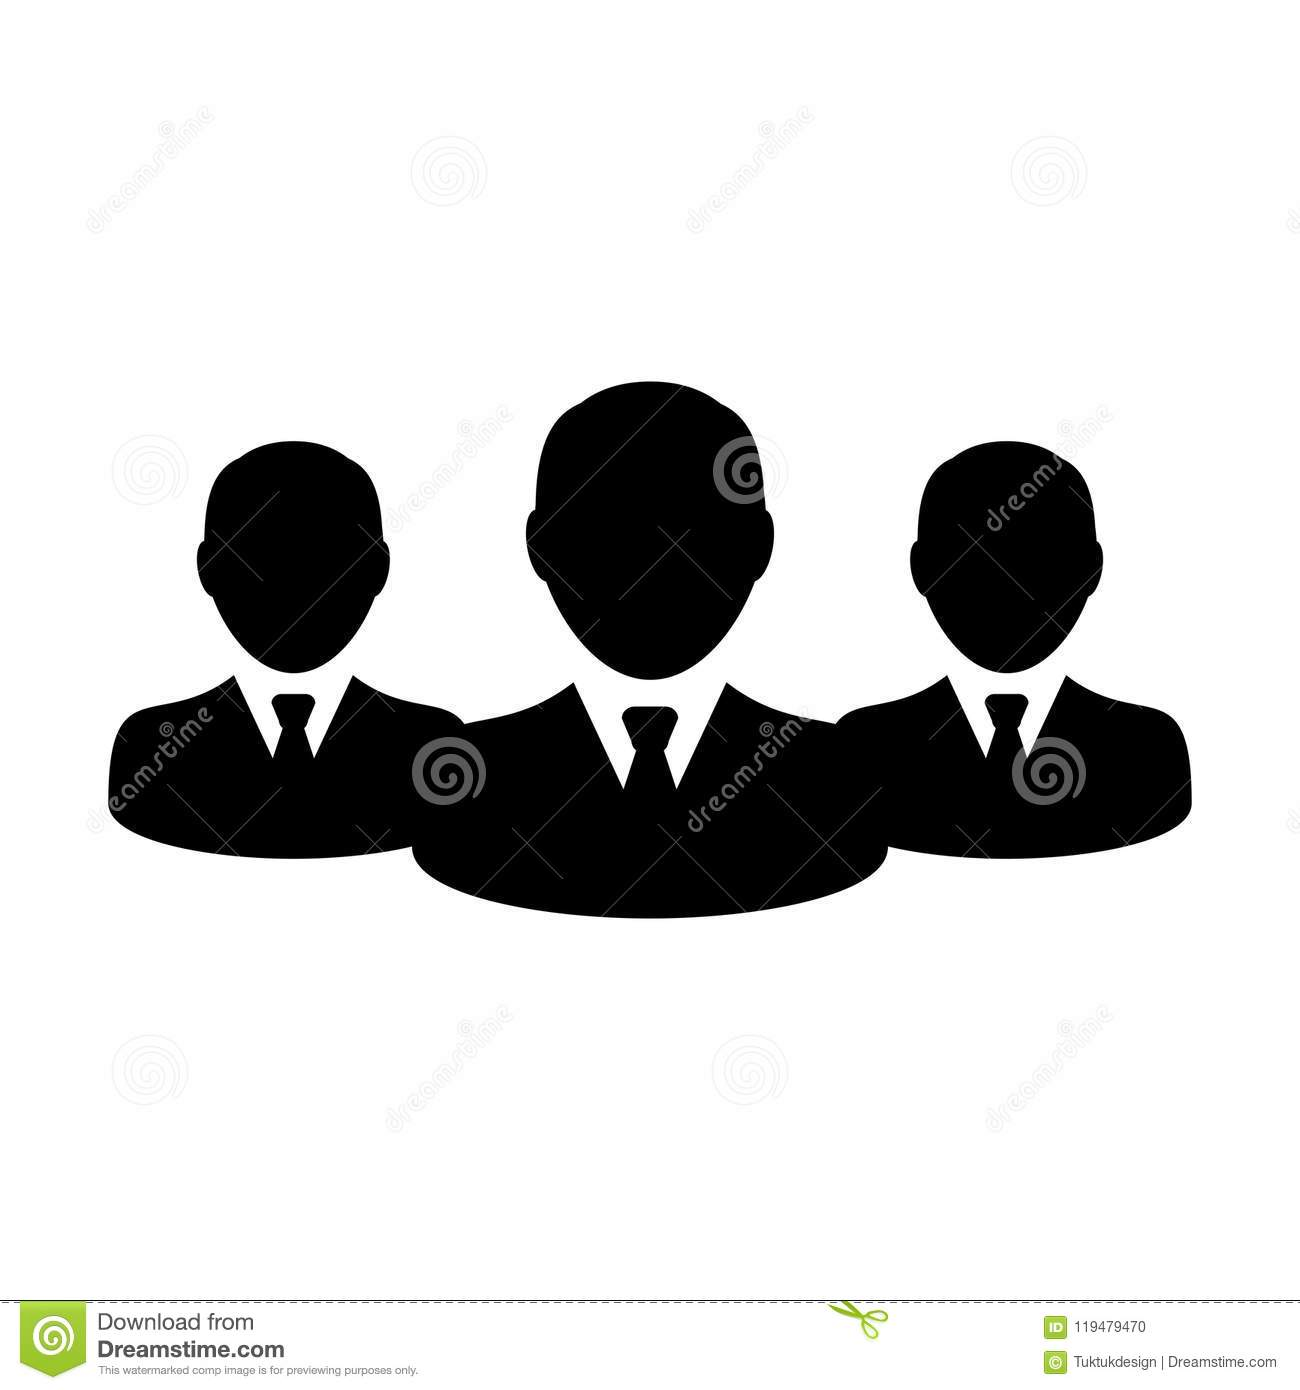 Business People Icon Vector Male Group Of Persons Symbol Avatar For